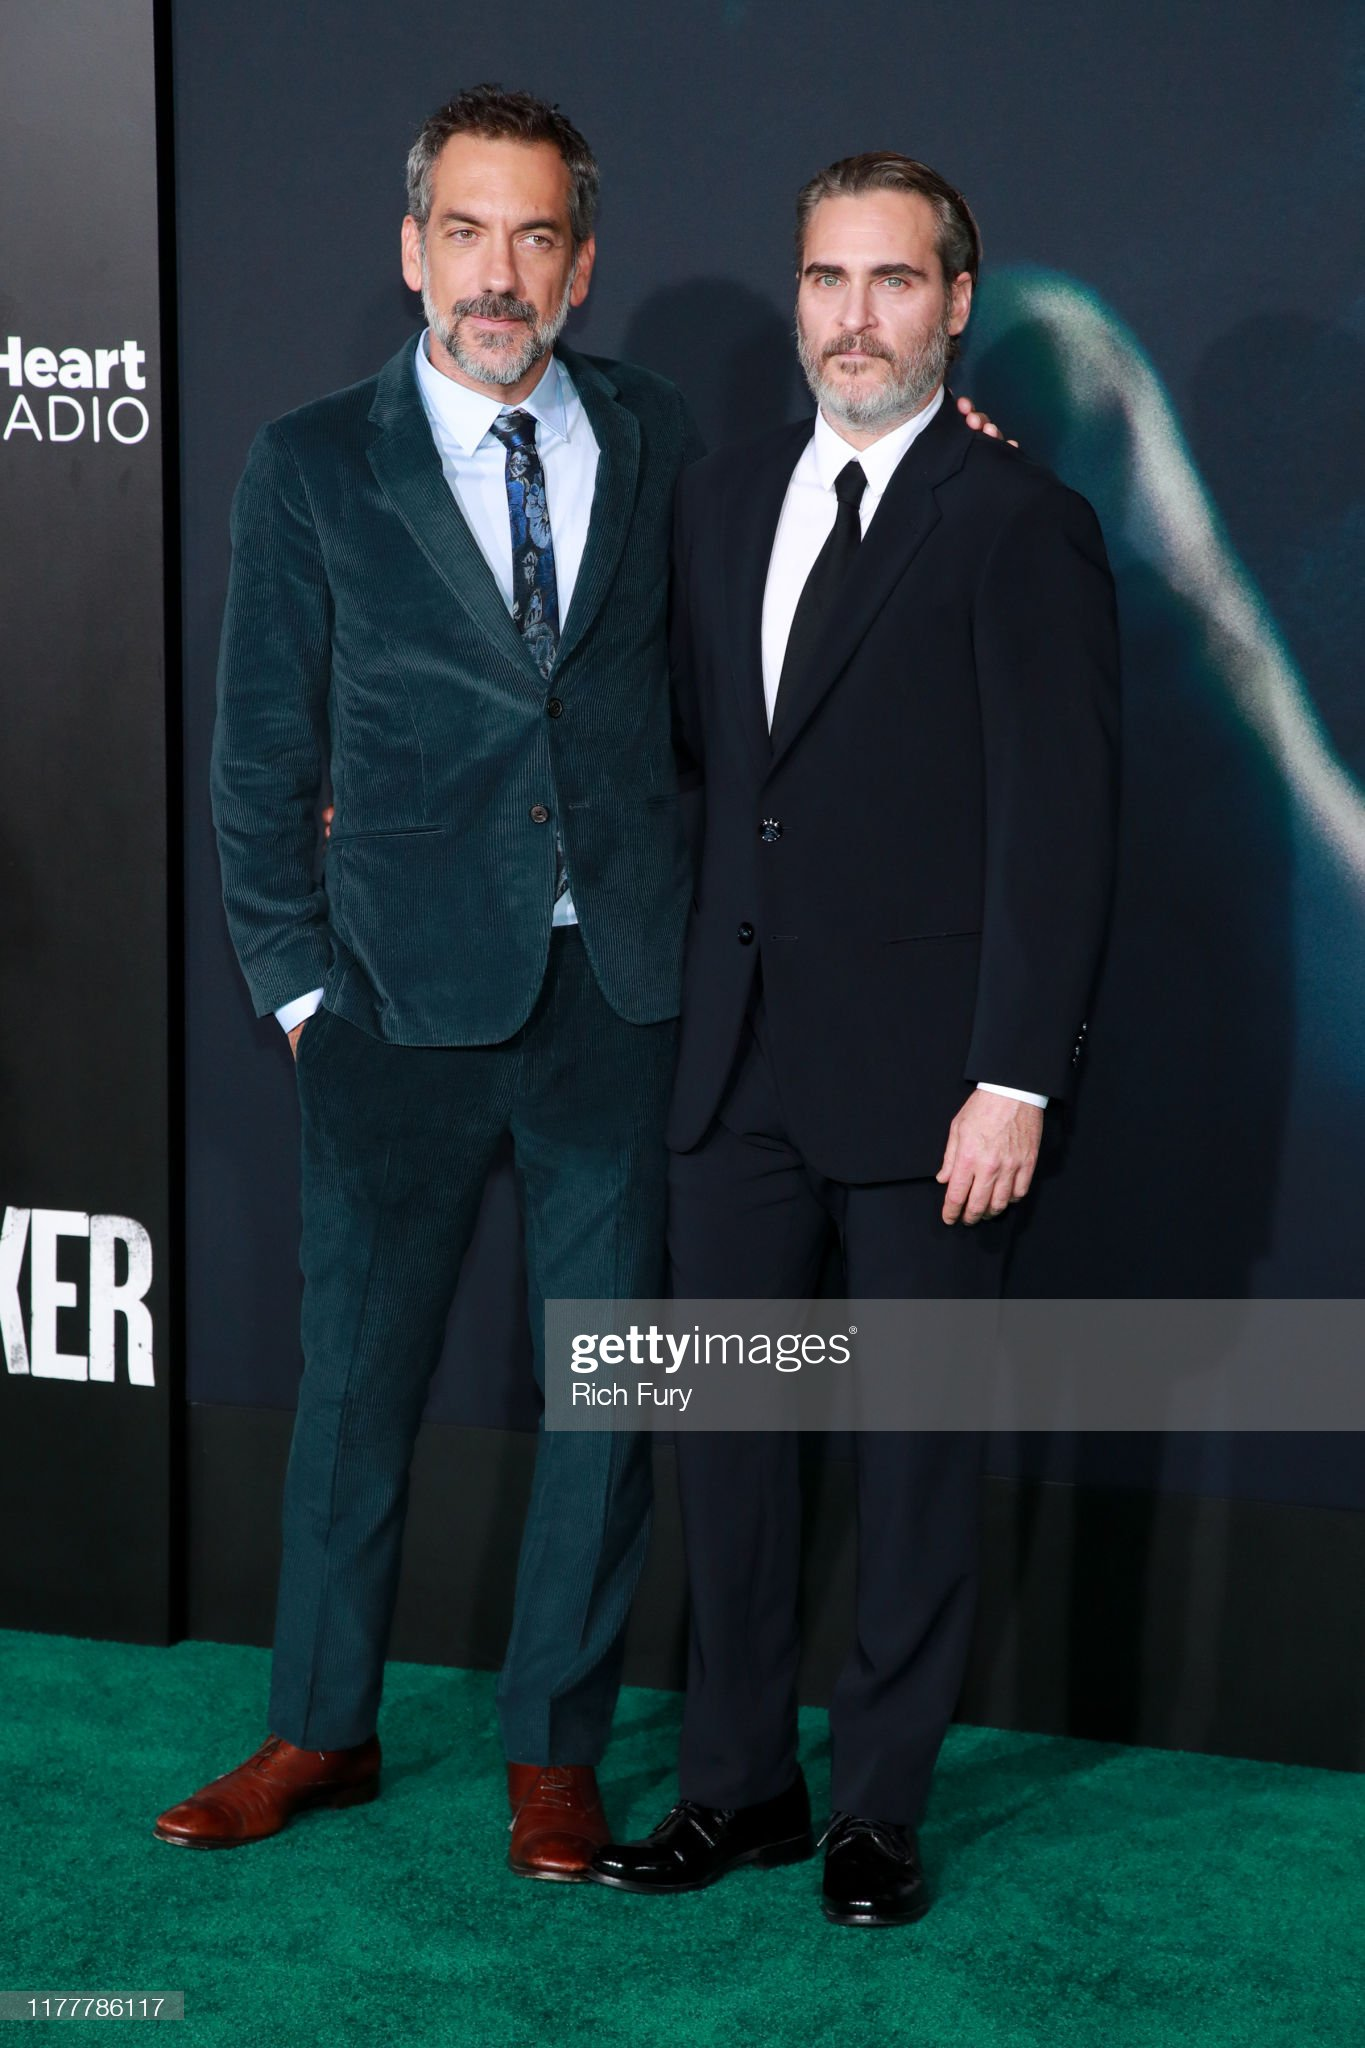 ¿Cuánto mide Joaquin Phoenix? - Altura - Real height Todd-phillips-and-joaquin-phoenix-attend-the-premiere-of-warner-bros-picture-id1177786117?s=2048x2048